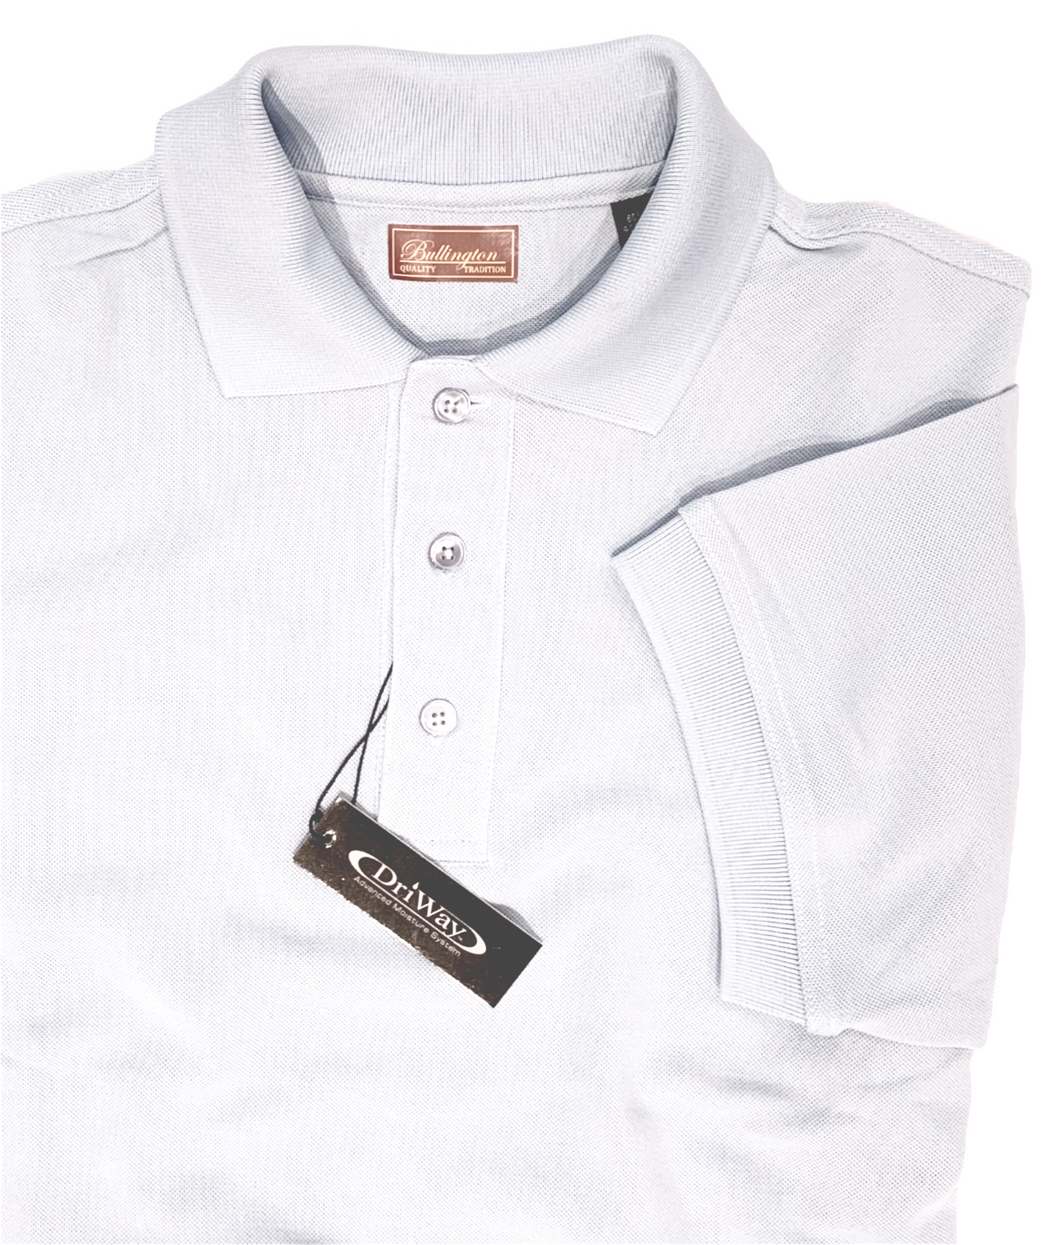 WHITE MOISTURE WICKING GOLF SHIRT